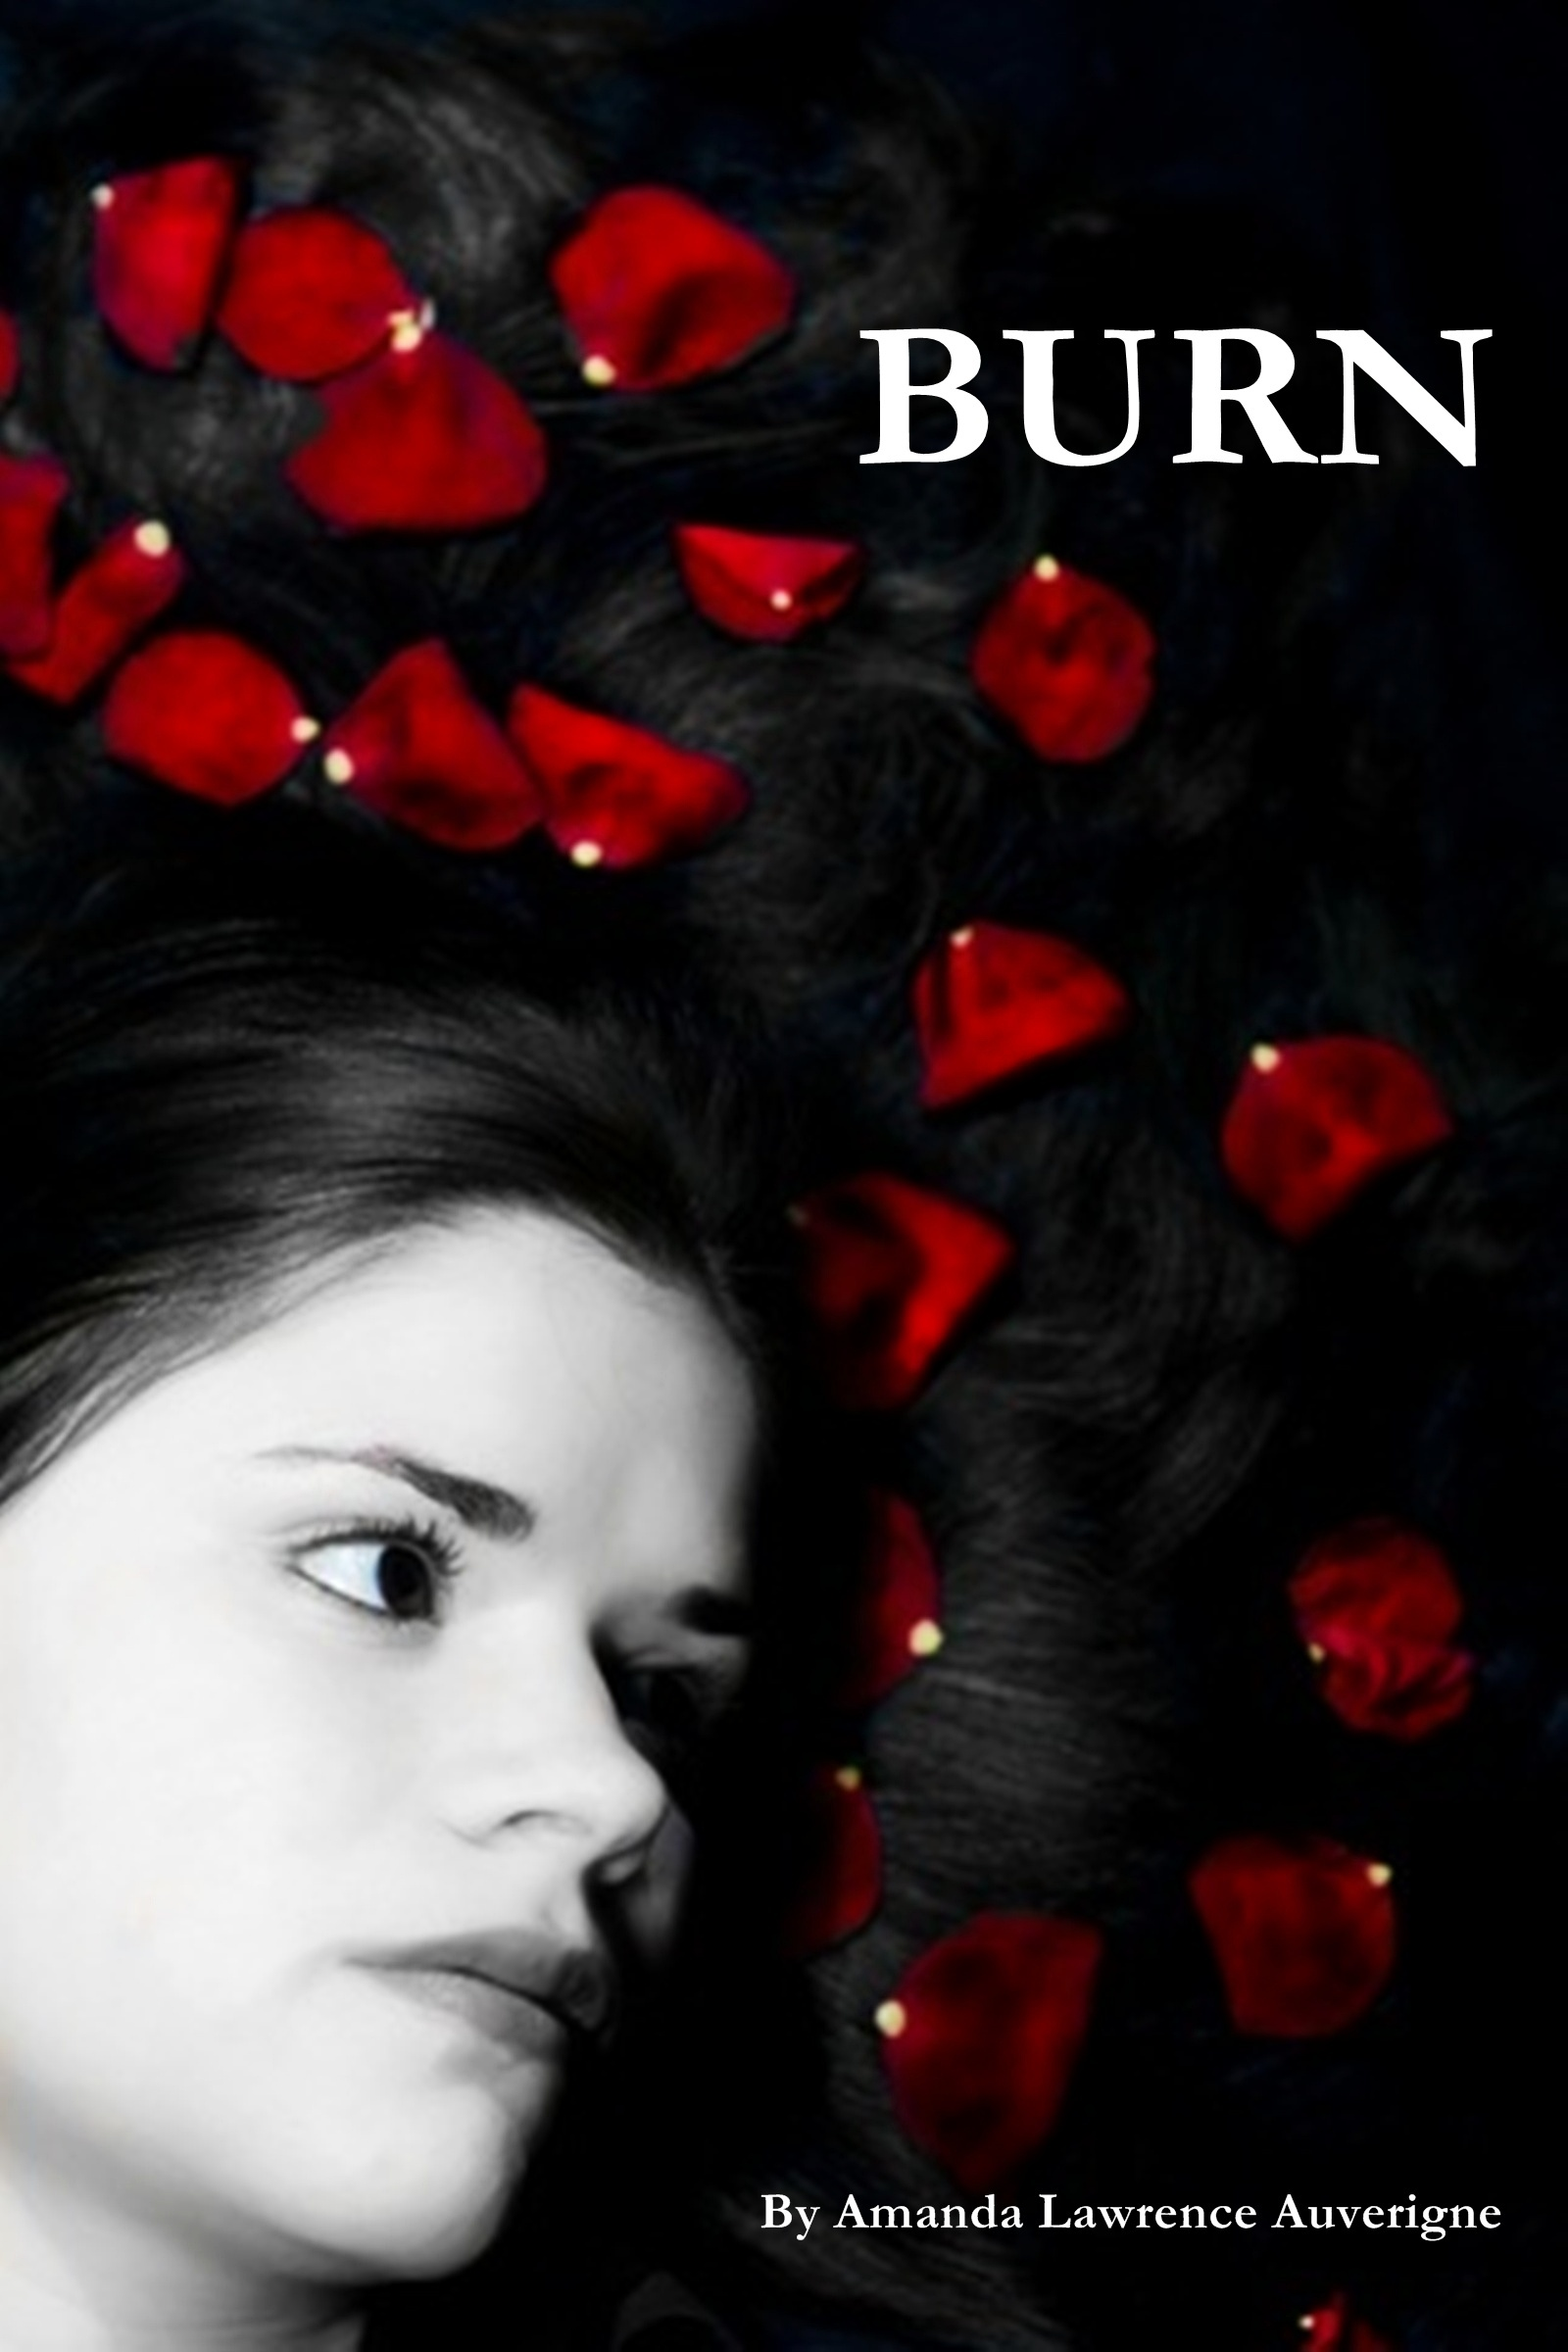 Burn: A Short Romance Story By: Amanda Lawrence Auverigne